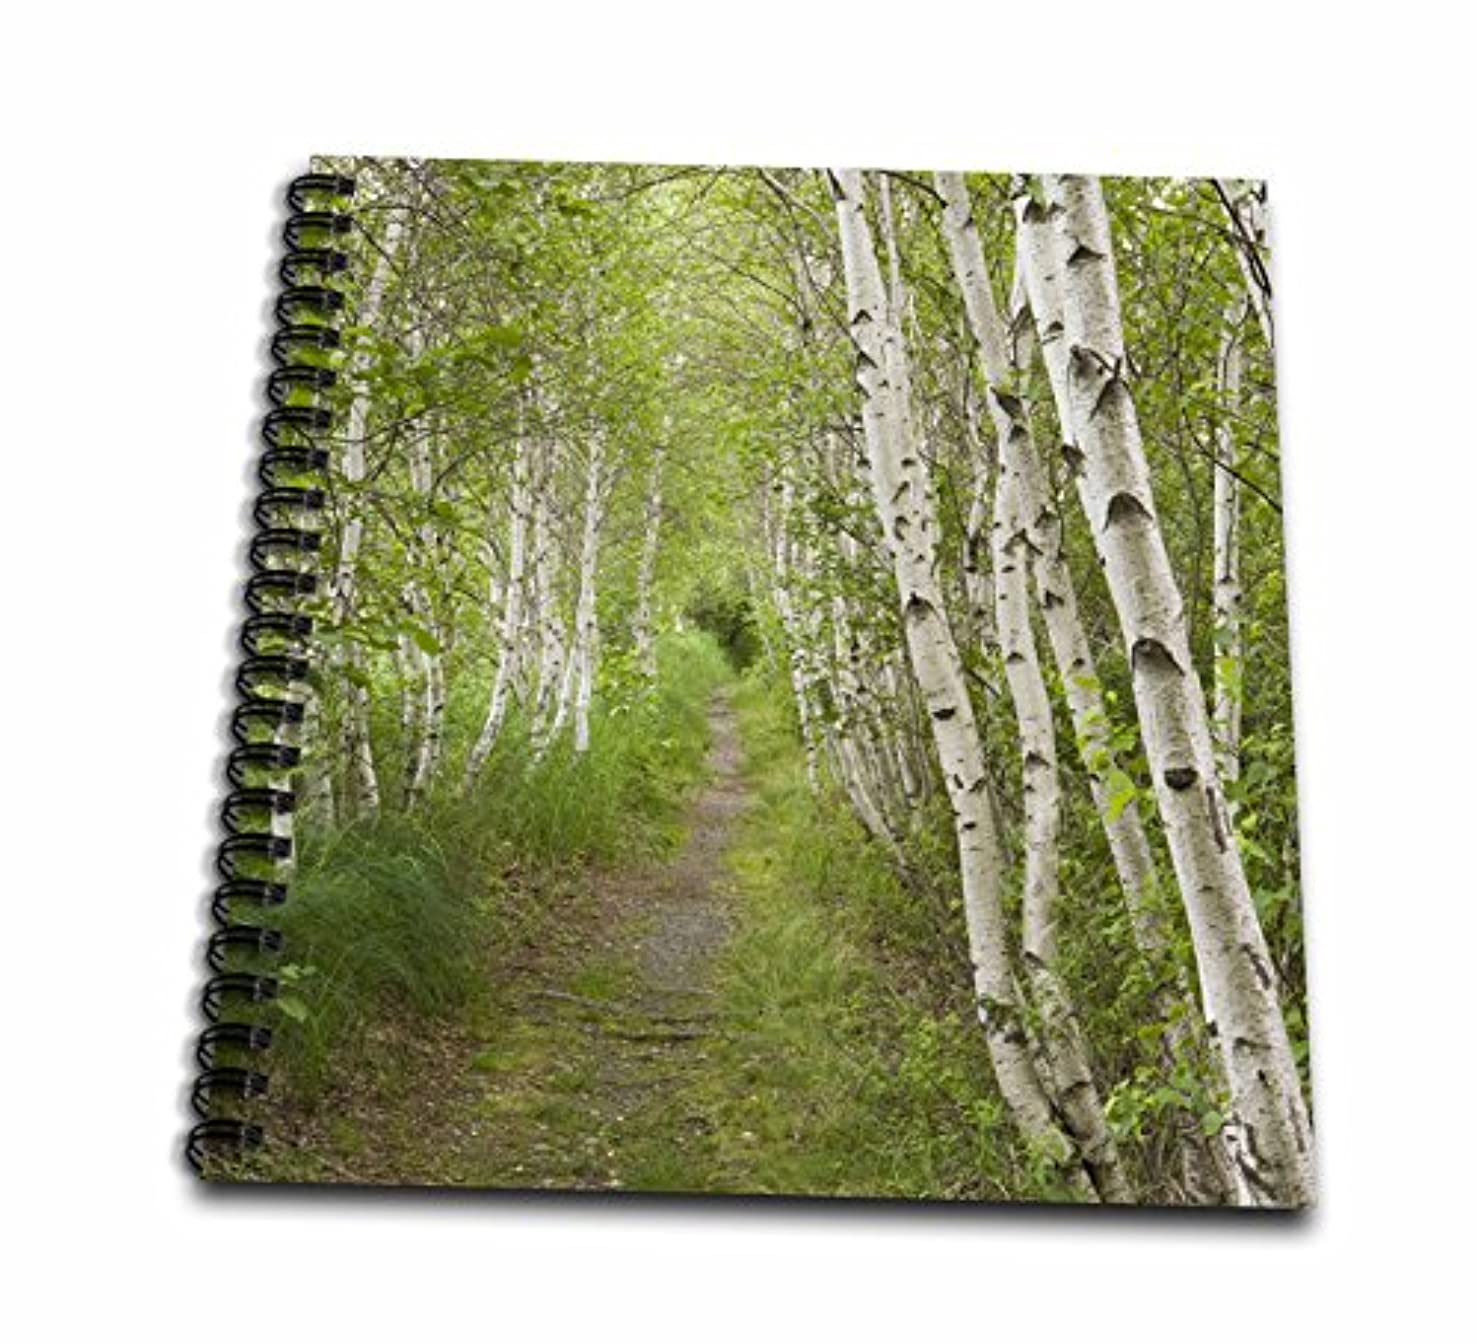 3dRose db_90692_2 Paper Birch Trees, Path, Acadia Np, Maine-Us20 Jmo0986-Jerry and Marcy Monkman-Memory Book, 12 by 12-Inch